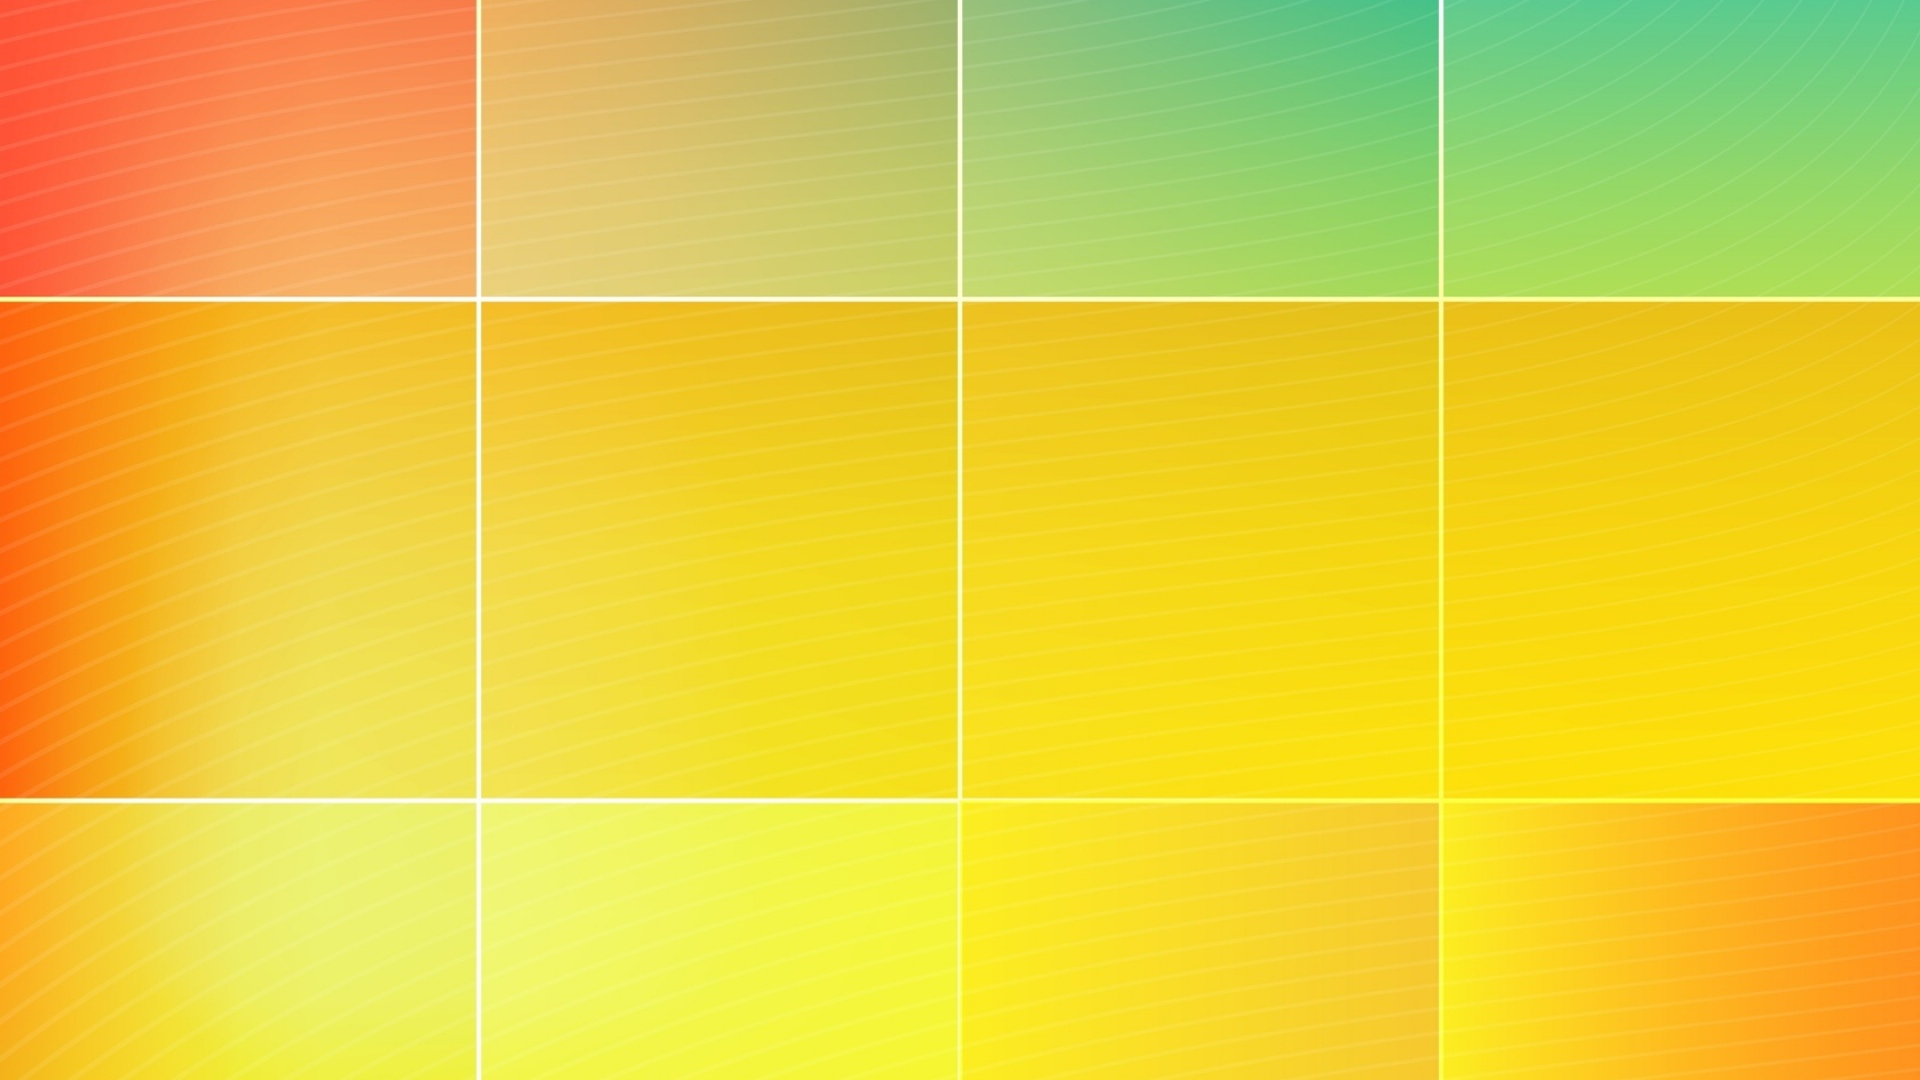 download wallpaper 1920x1080 squares texture yellow red